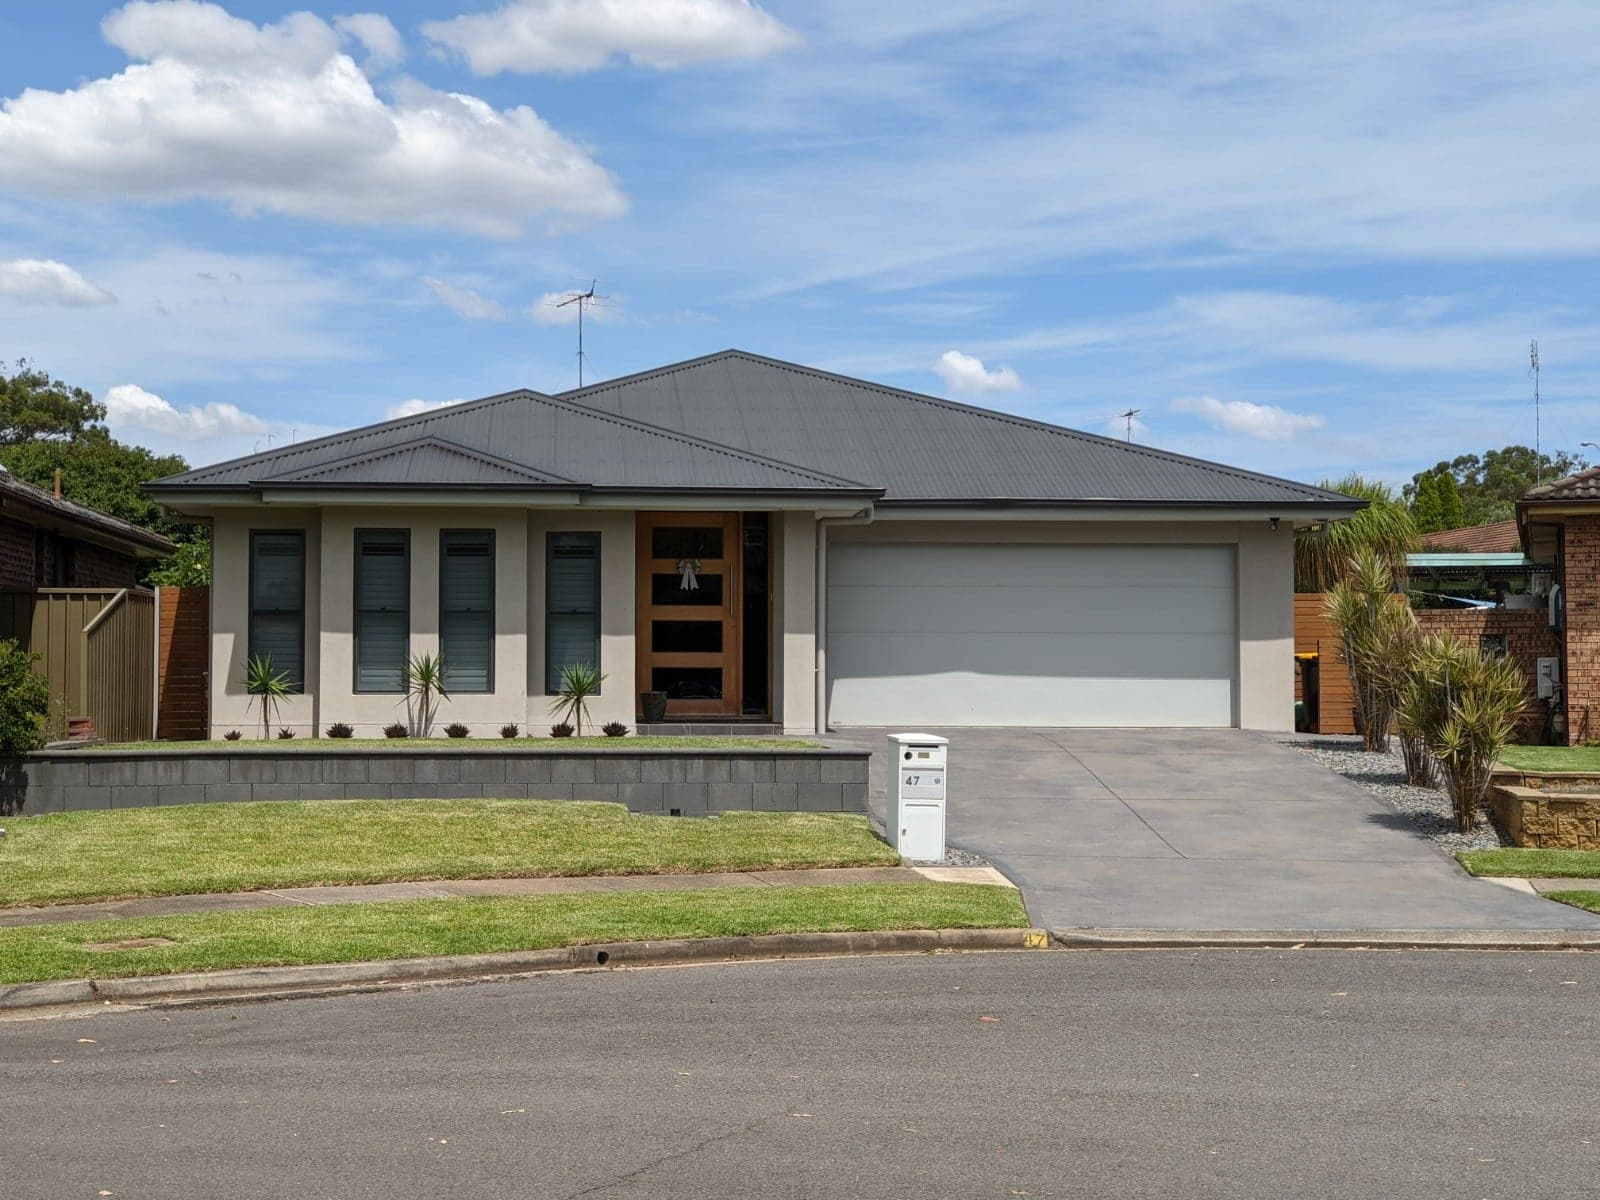 Rendering Job complete in Quakers Hill